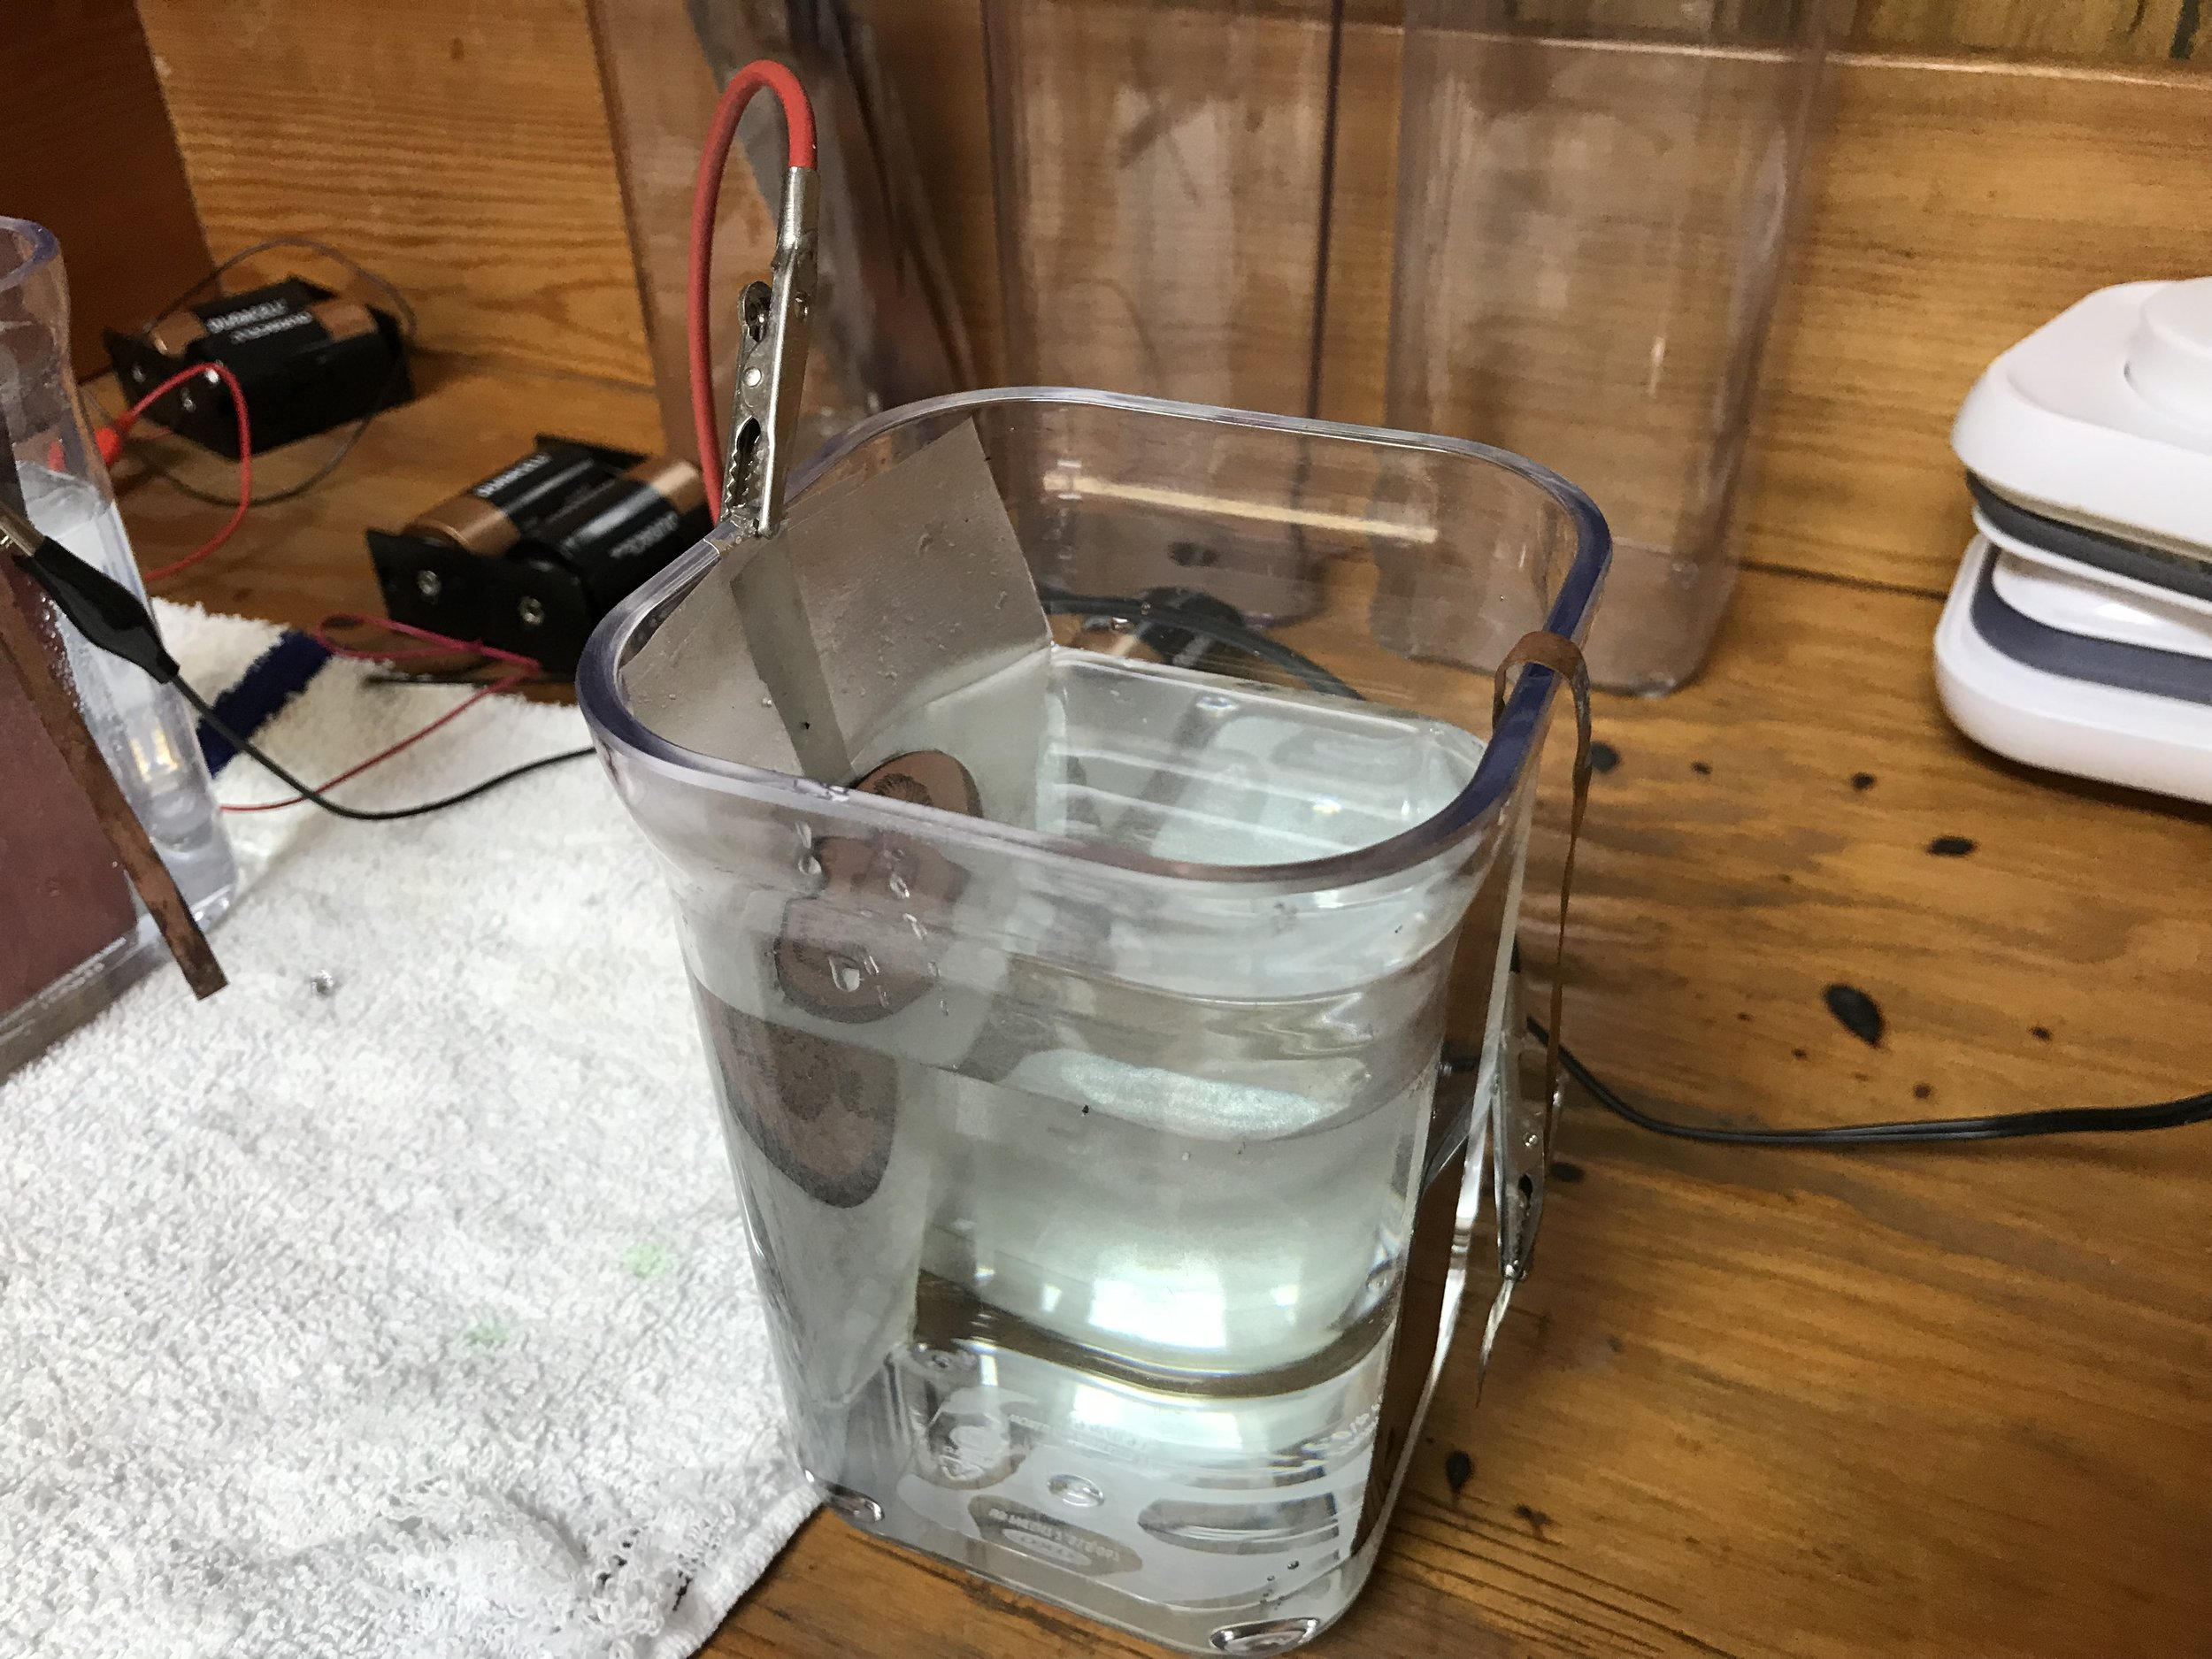 - 1. Mix pickling salt, water and citric acid to make the metal etching solution. (This works with most metals, but for silver we used cupric nitrate).2. Place in a container large enough to hold the metal.